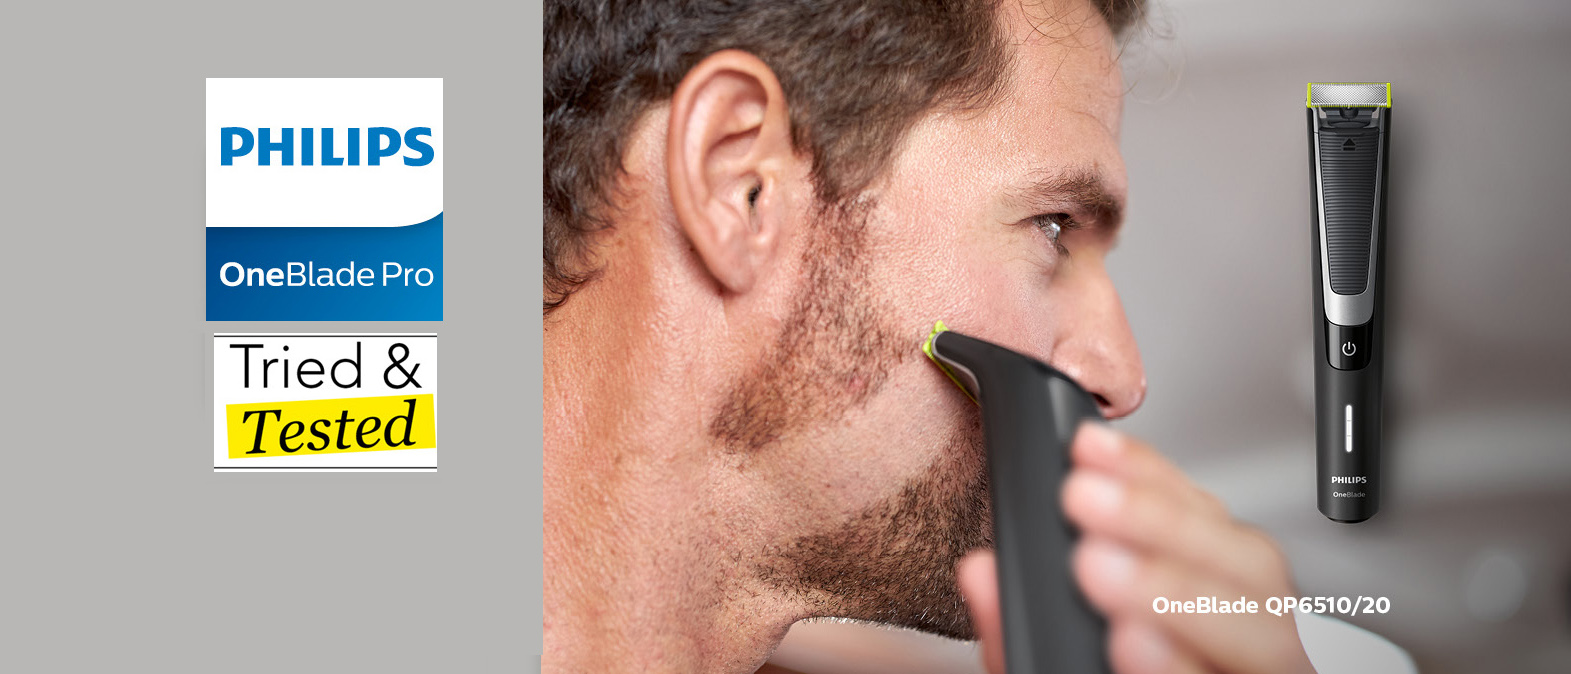 Review of the Philips OneBlade Pro